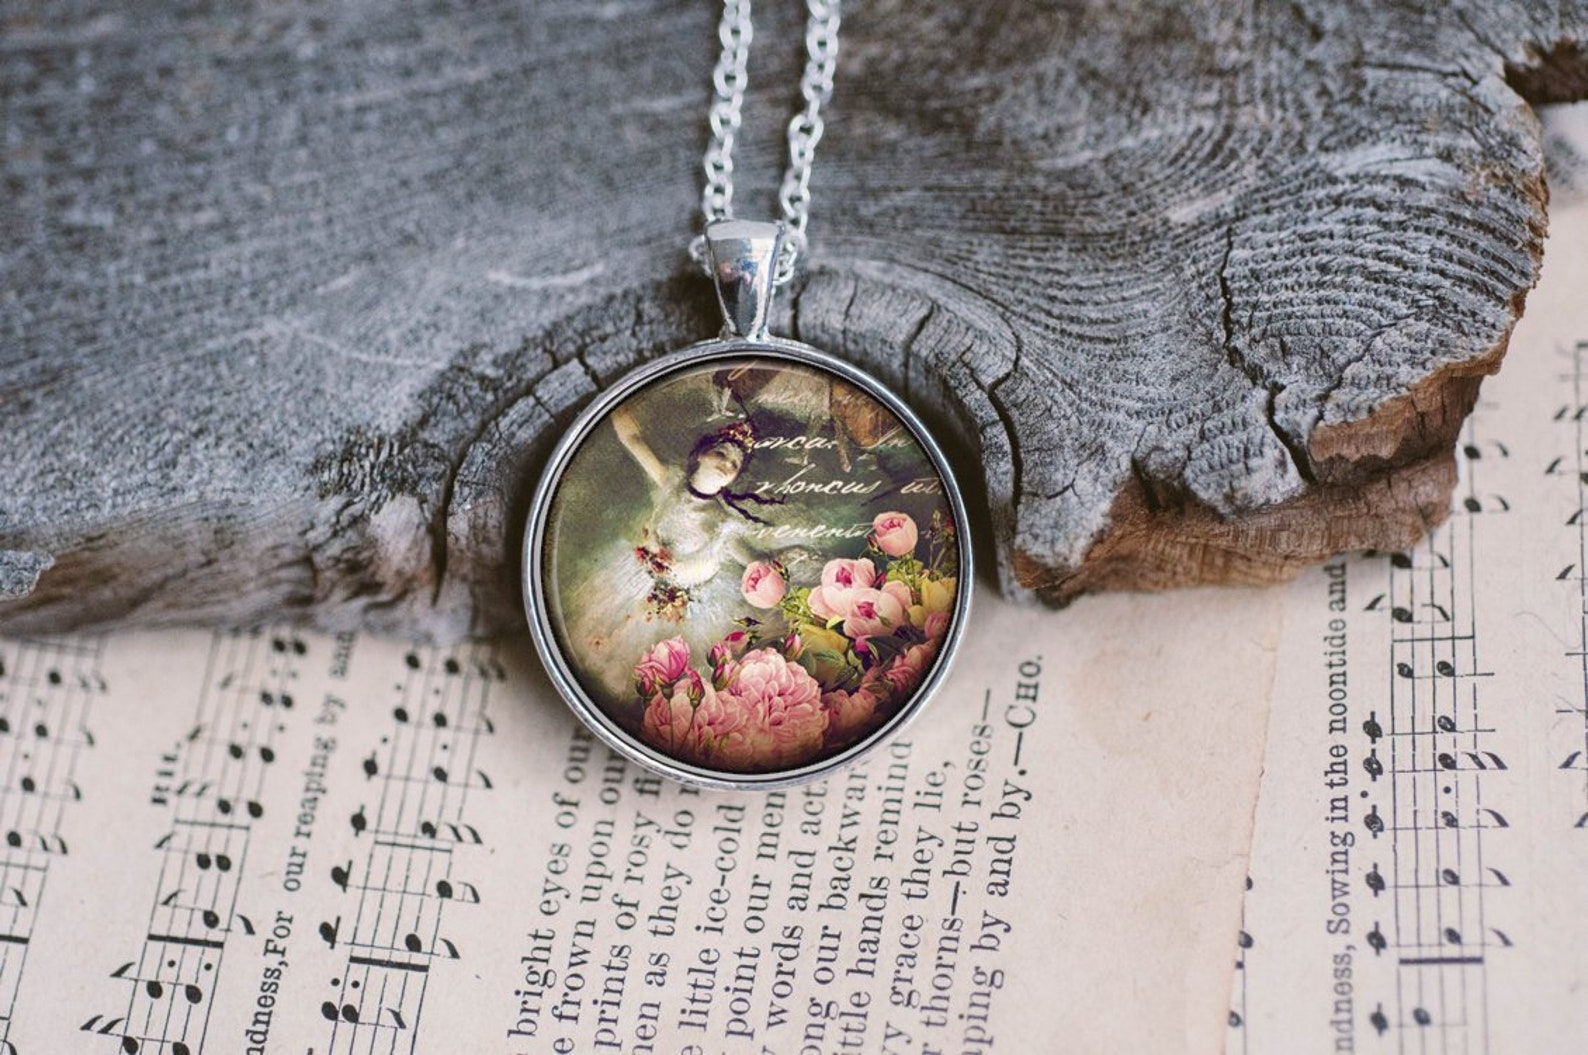 degas ballet, dancer gifts, ballerina necklace, dance teacher gifts, ballet necklace, little ballerina